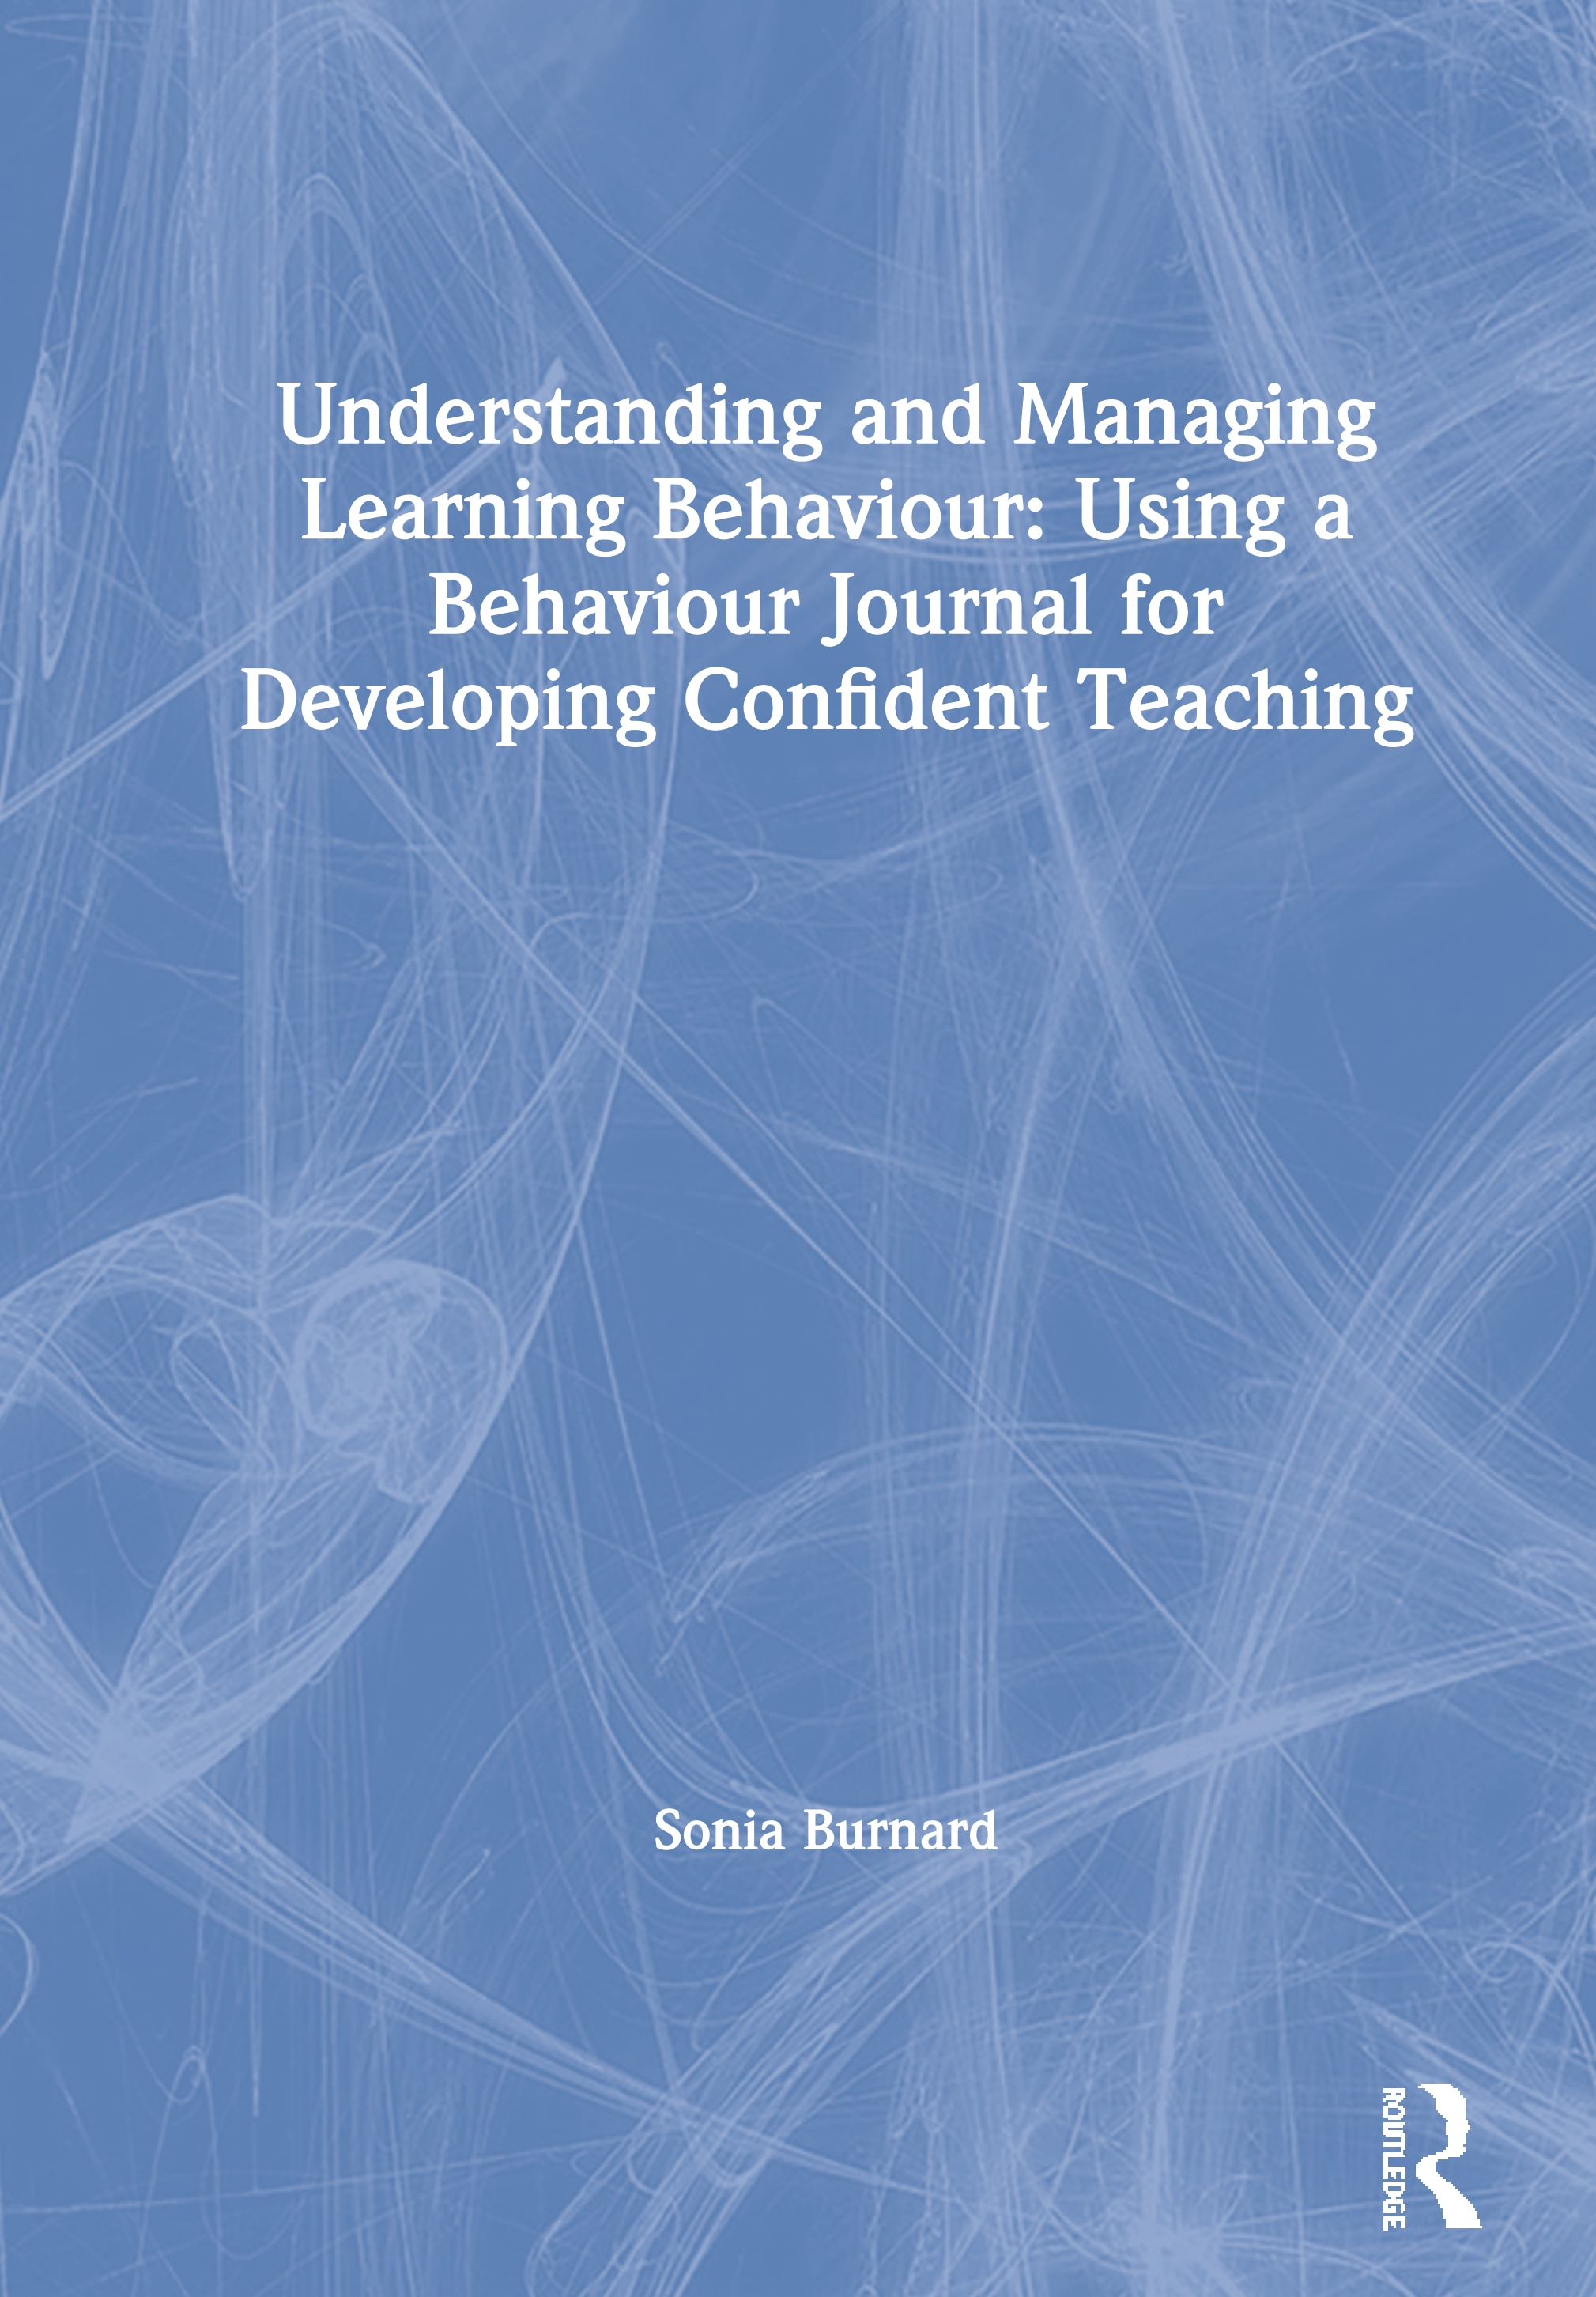 Understanding and Managing Learning Behaviour: Using a Behaviour Journal for Developing Confident Teaching: 1st Edition (Hardback) book cover